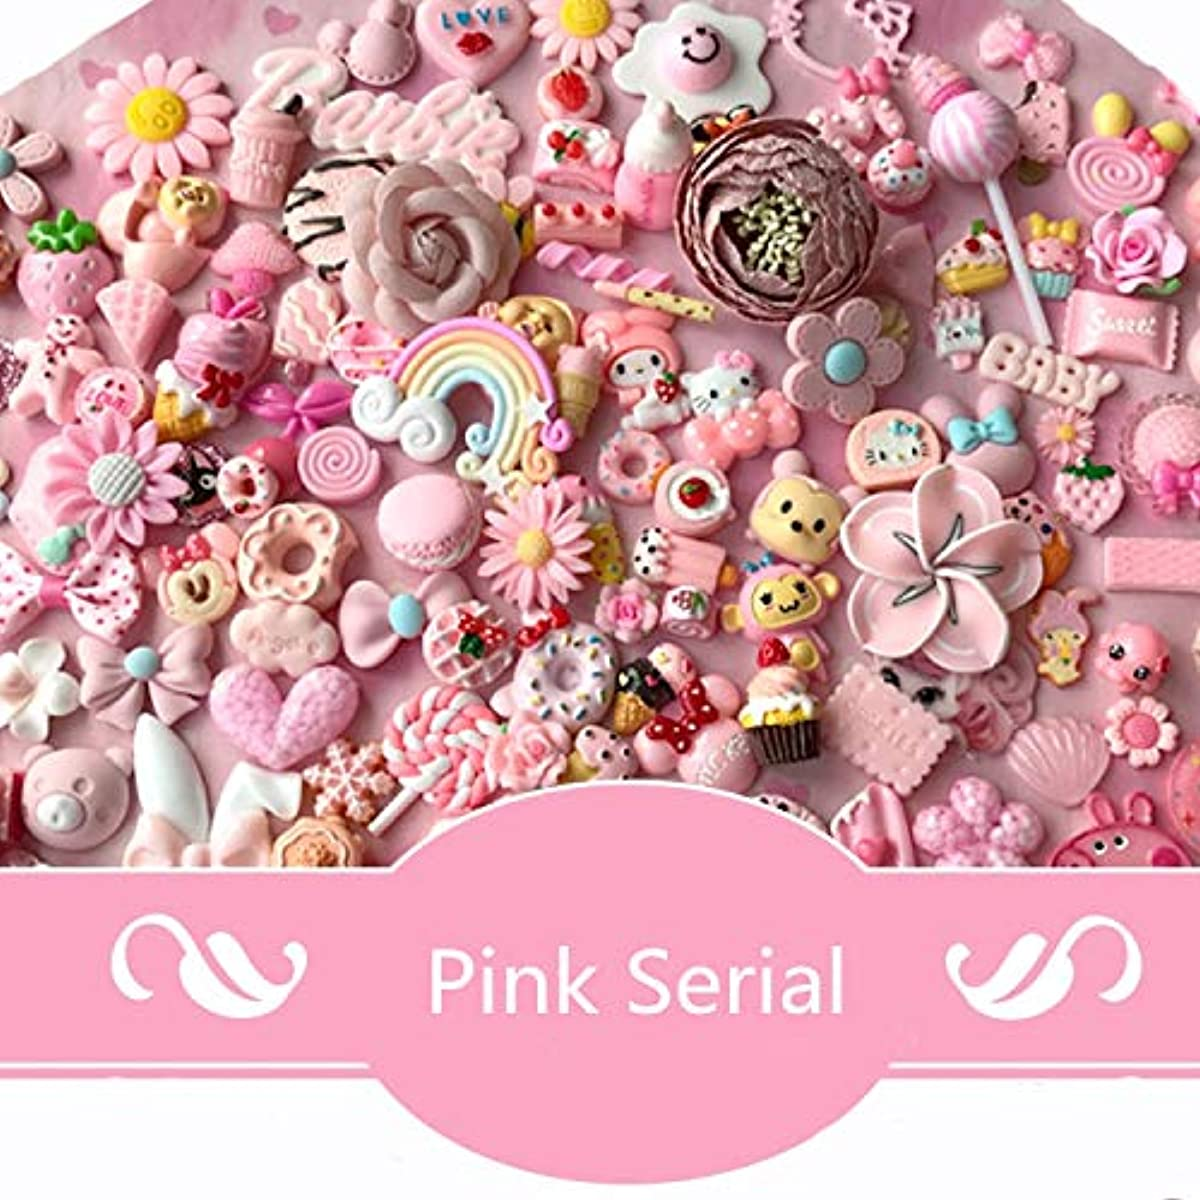 AMOBESTER 50pcs DIY Craft Making Resin Decoden Charms Jewery Making Kit/Set Slime Charms Princess Pink Series